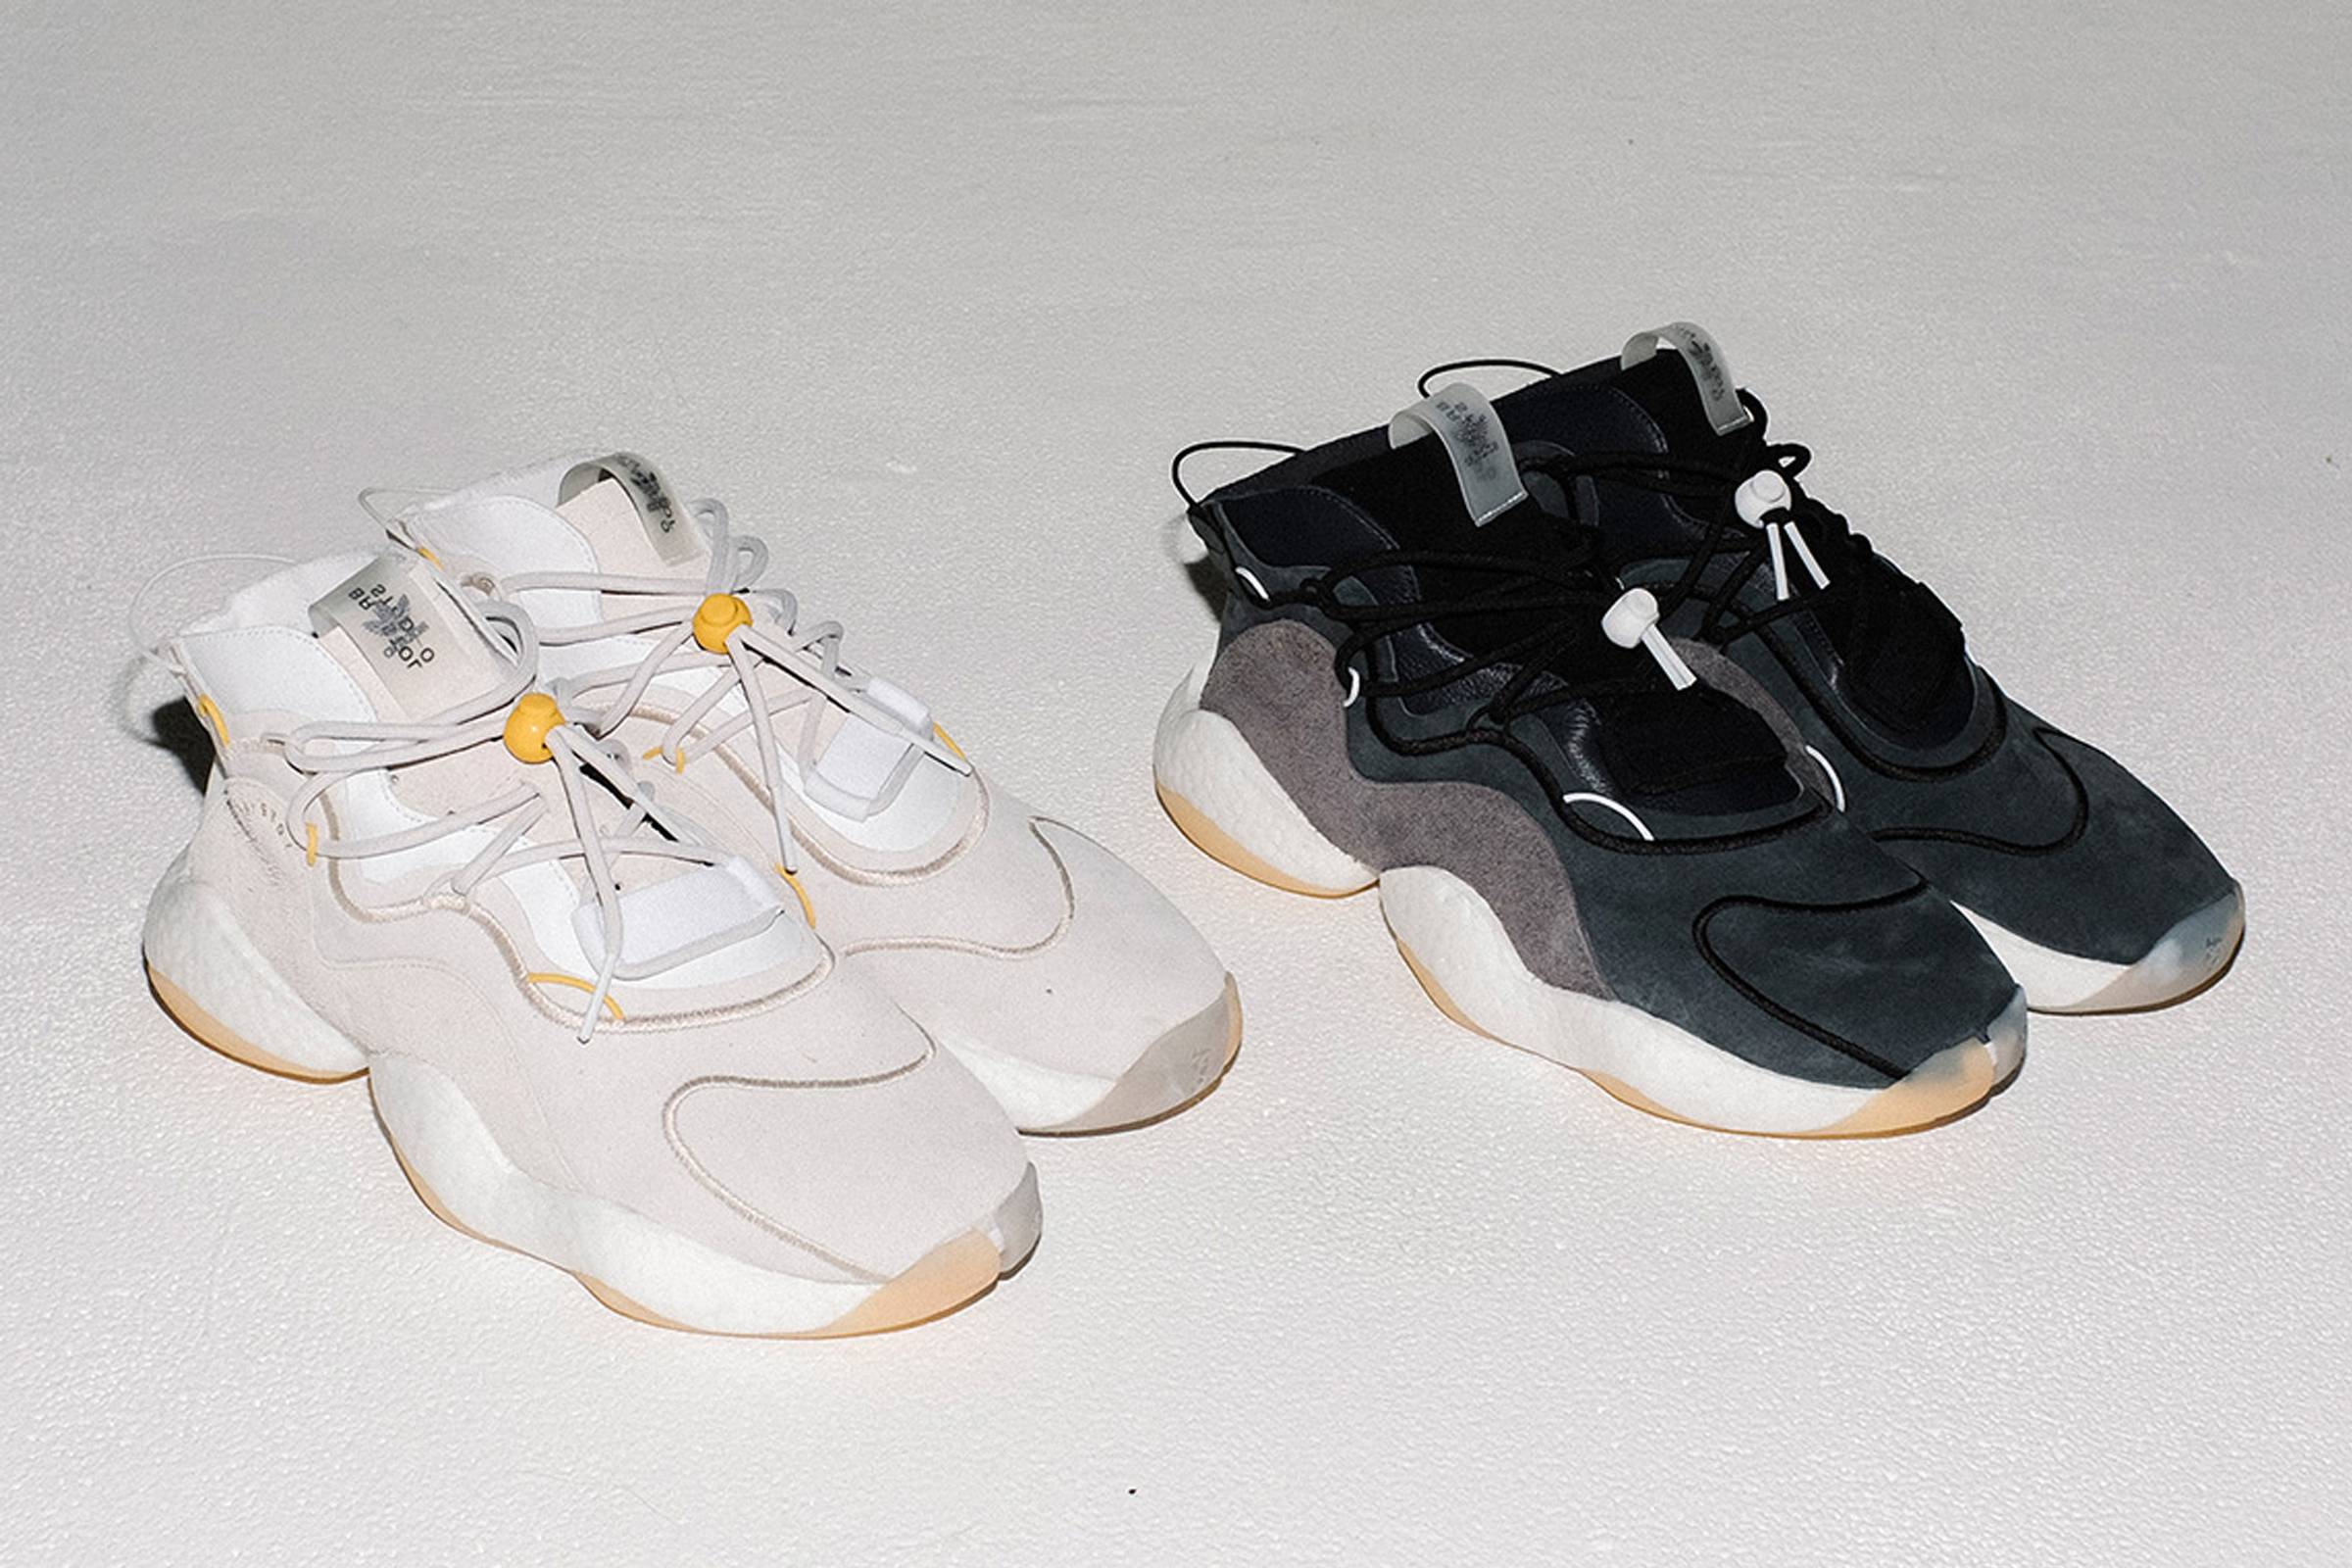 Bristol Studio's adidas Crazy BYW Collaboration